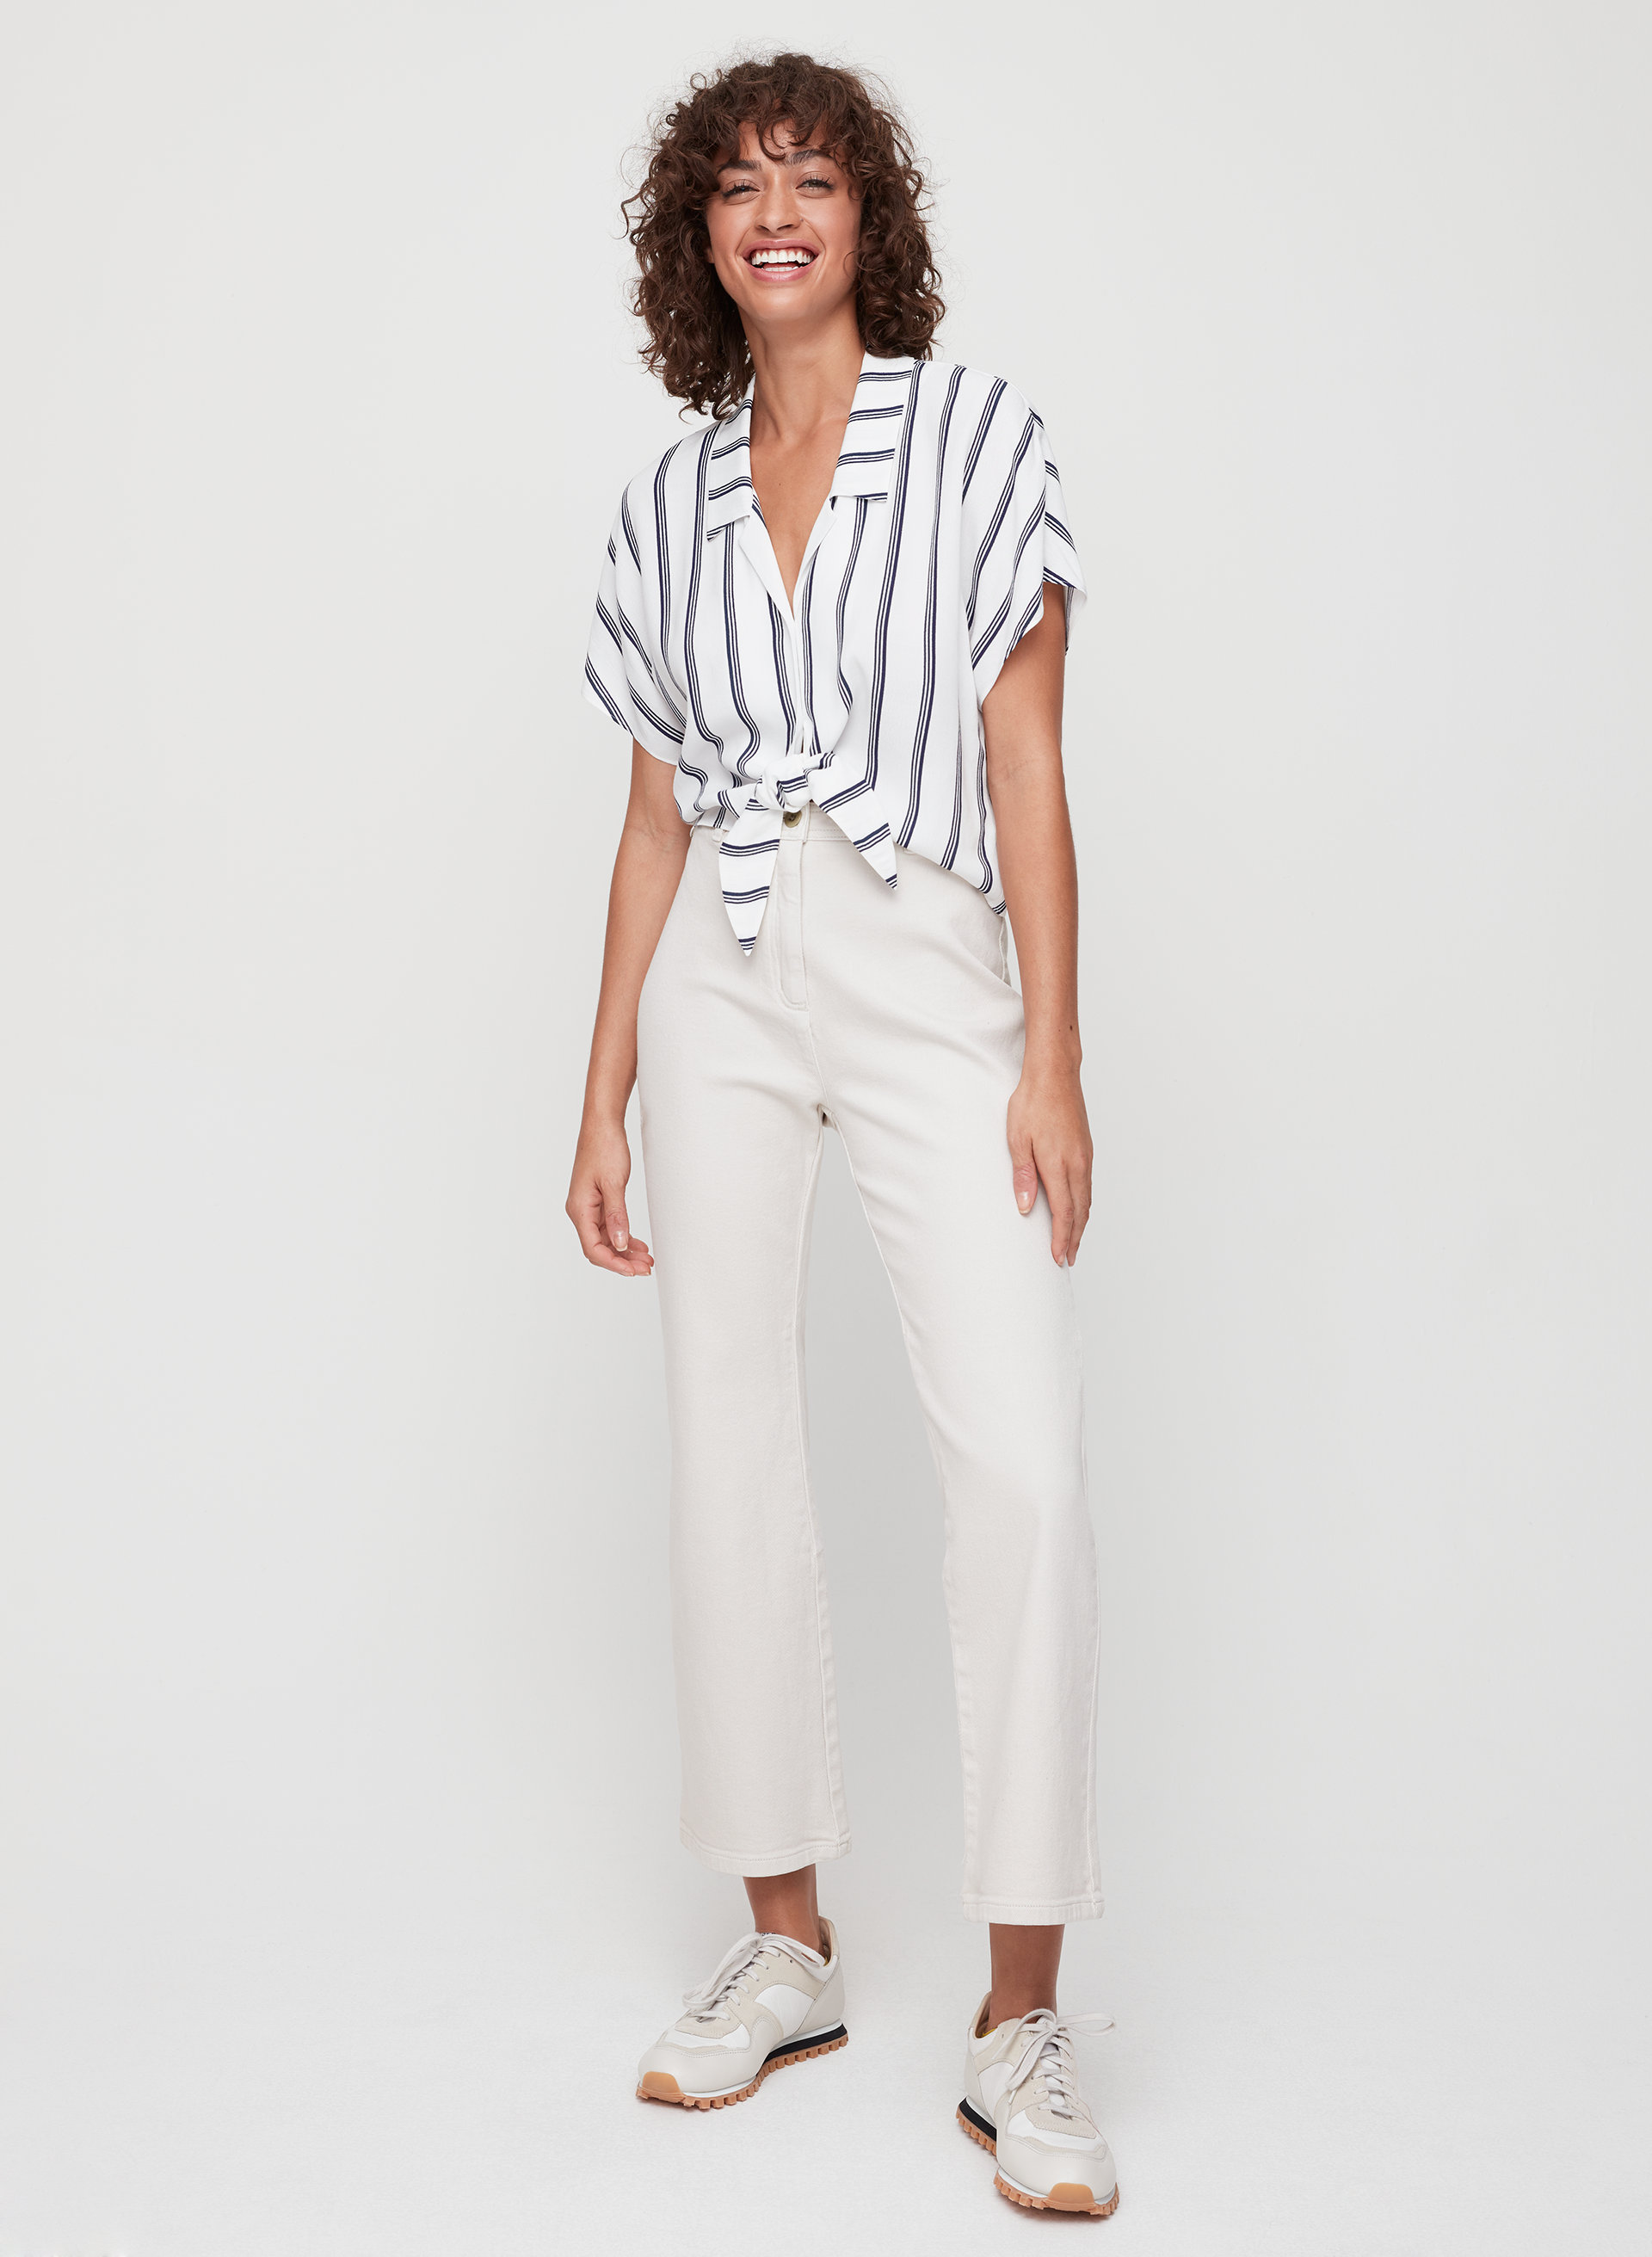 All About Lizzie 2012 wilfred free lizzie pant | aritzia us